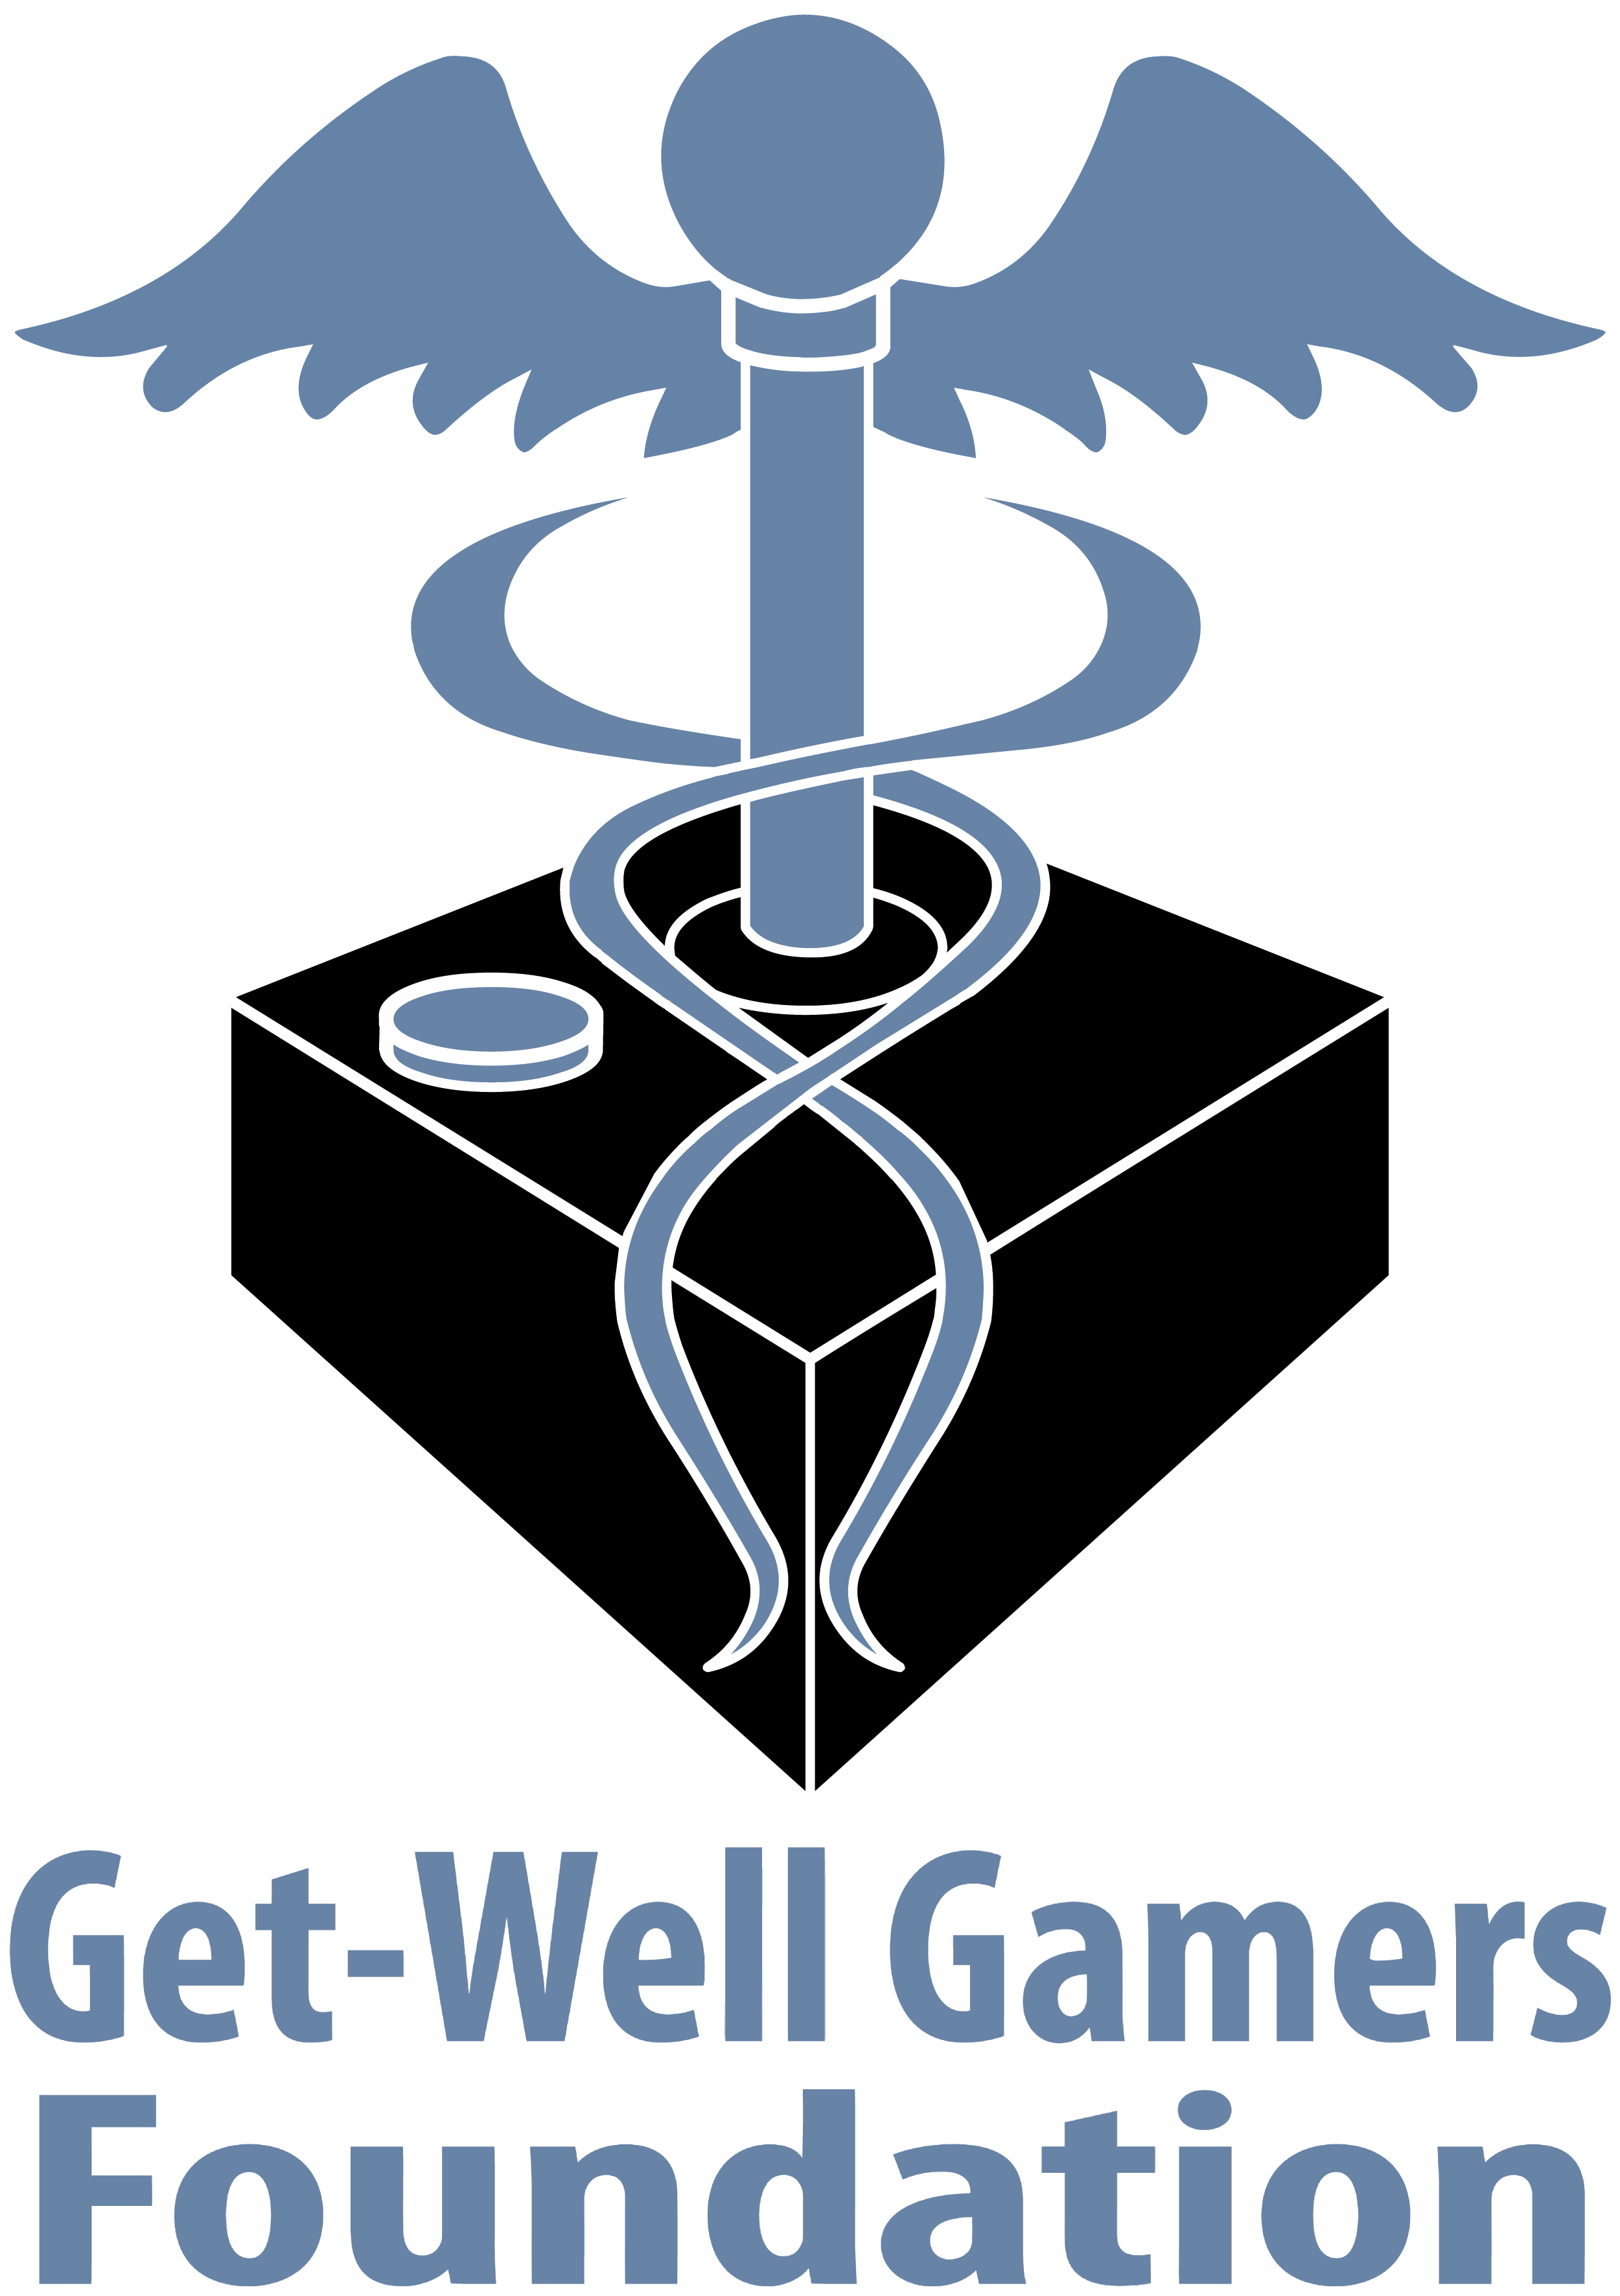 Get Well Gamers logo